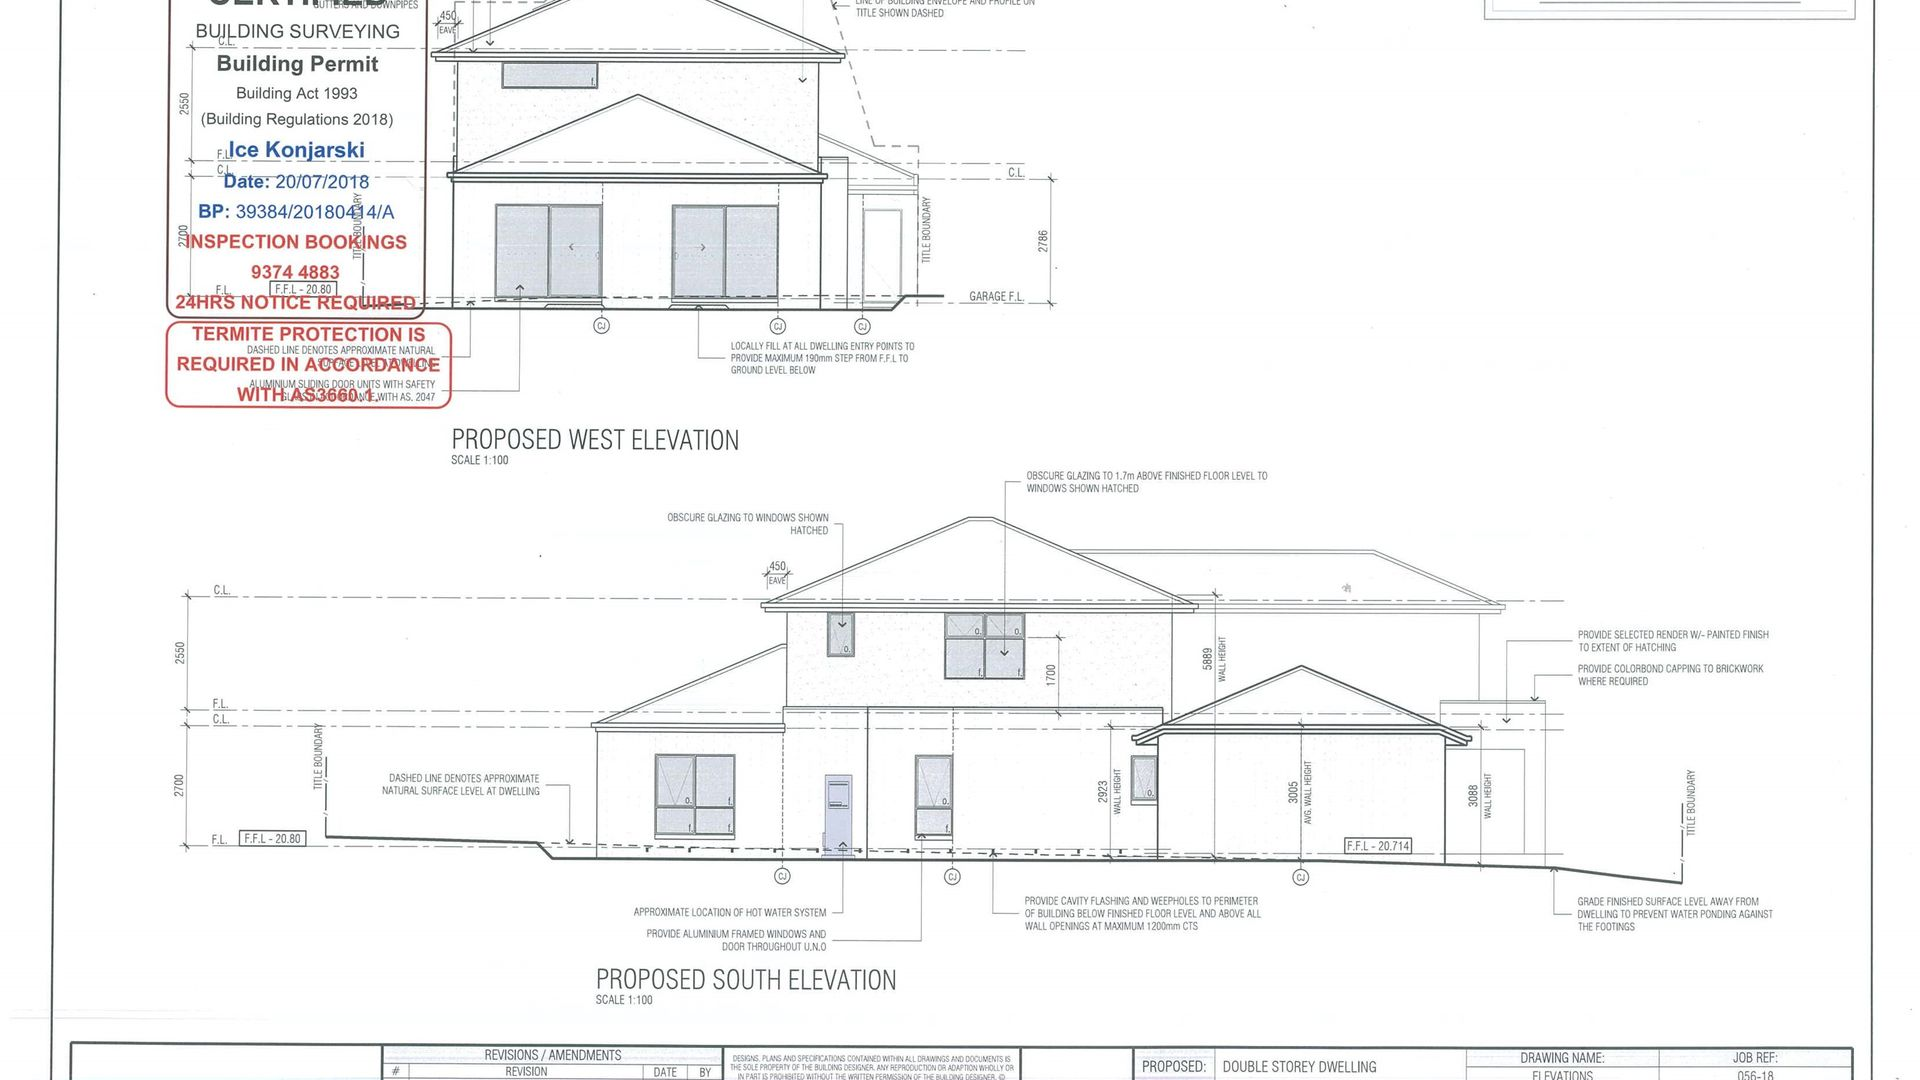 Lot 1028 Bendigo Drive Tarneit Vic 3029 Off The Plan House For Electrical Wiring Diagrams Dummies 1700 2550 Image 1